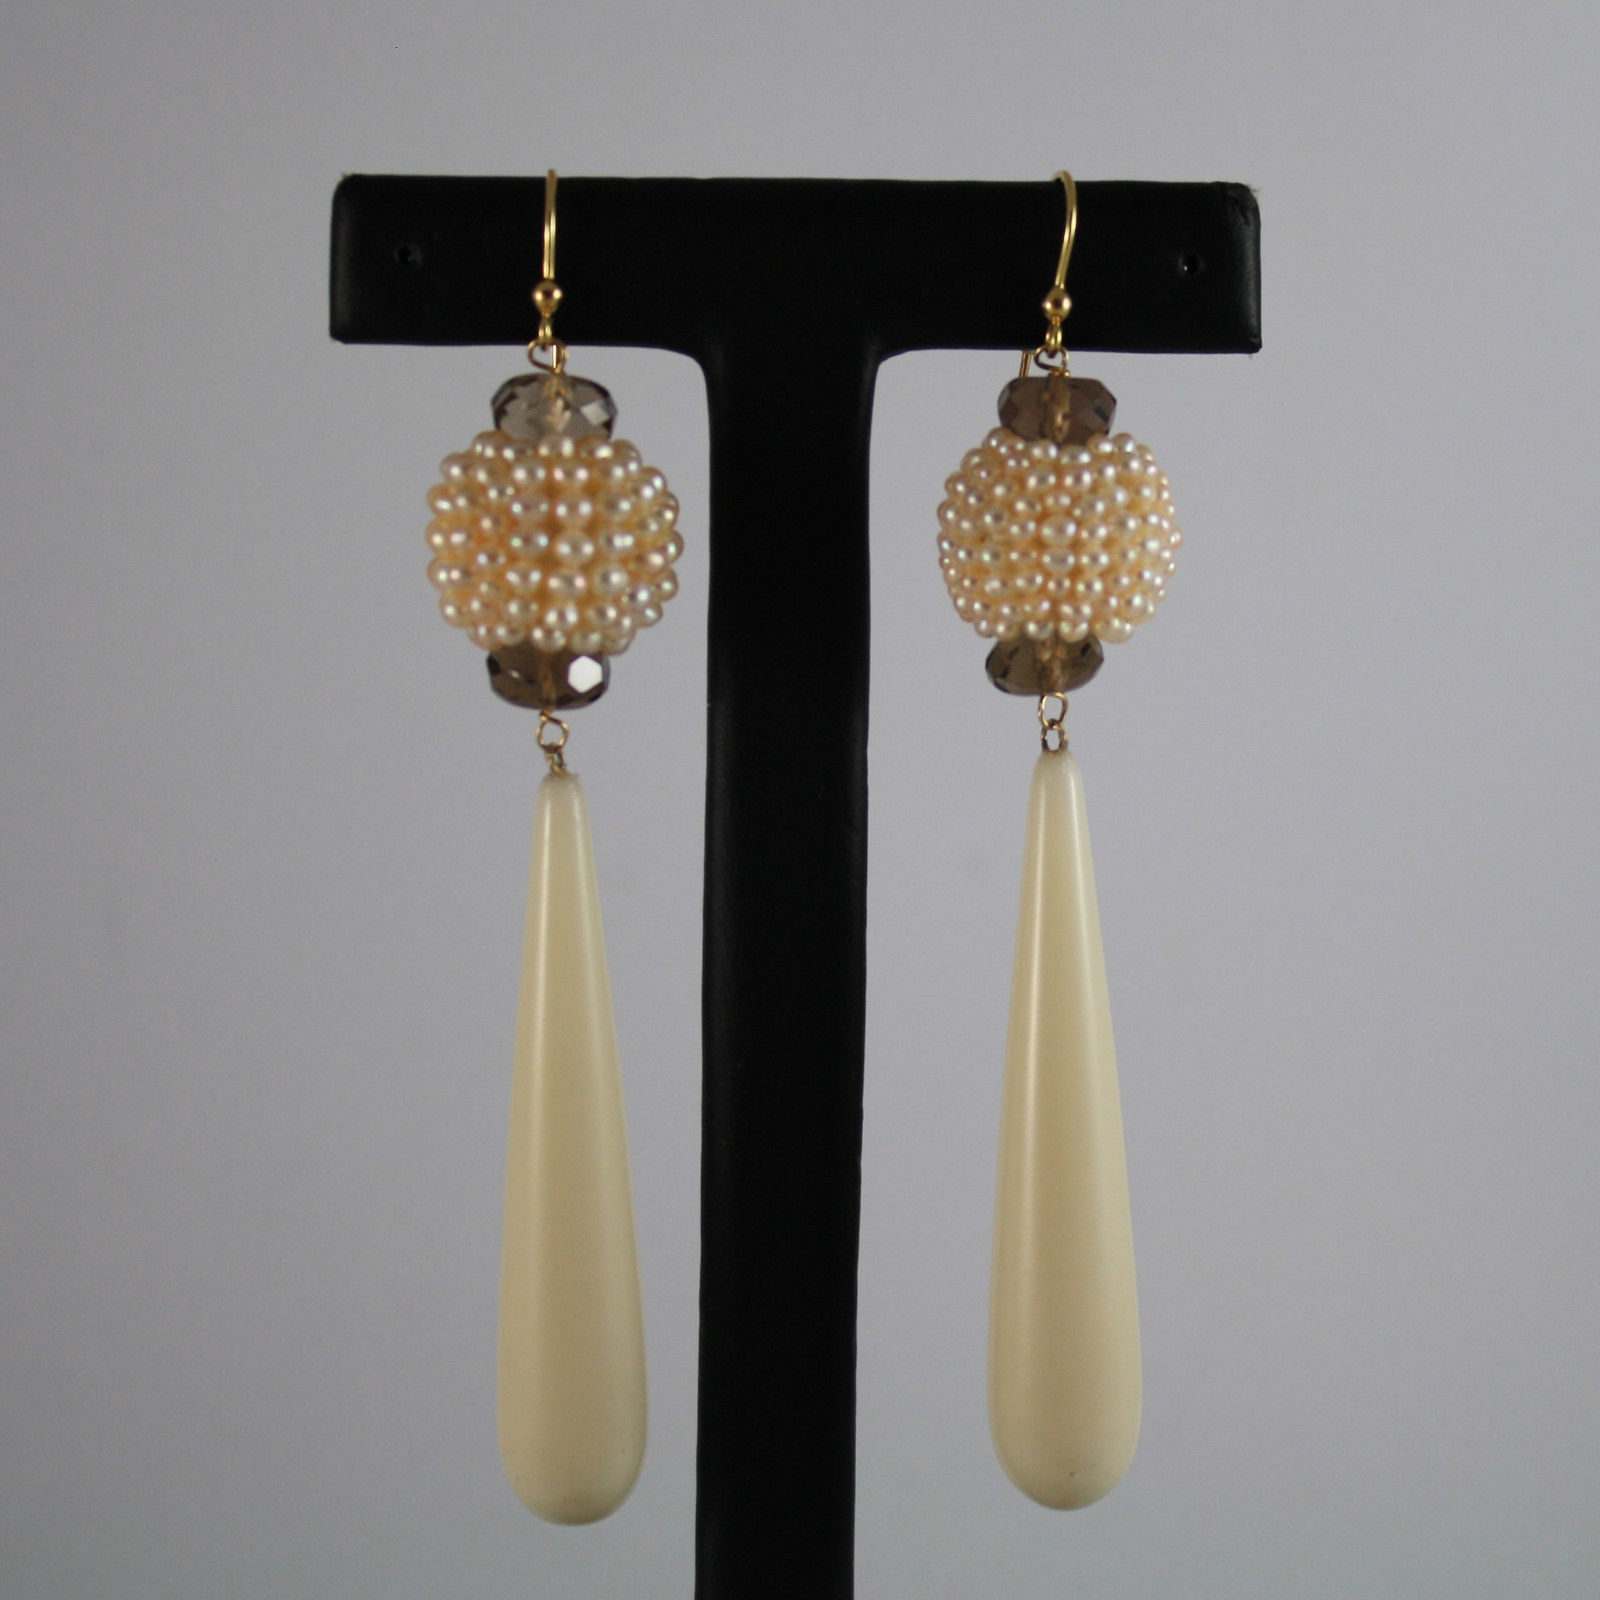 SOLID 18K YELLOW GOLD EARRINGS, WITH SMOKY QUARTZ, PEARLS AND BIG DROPS